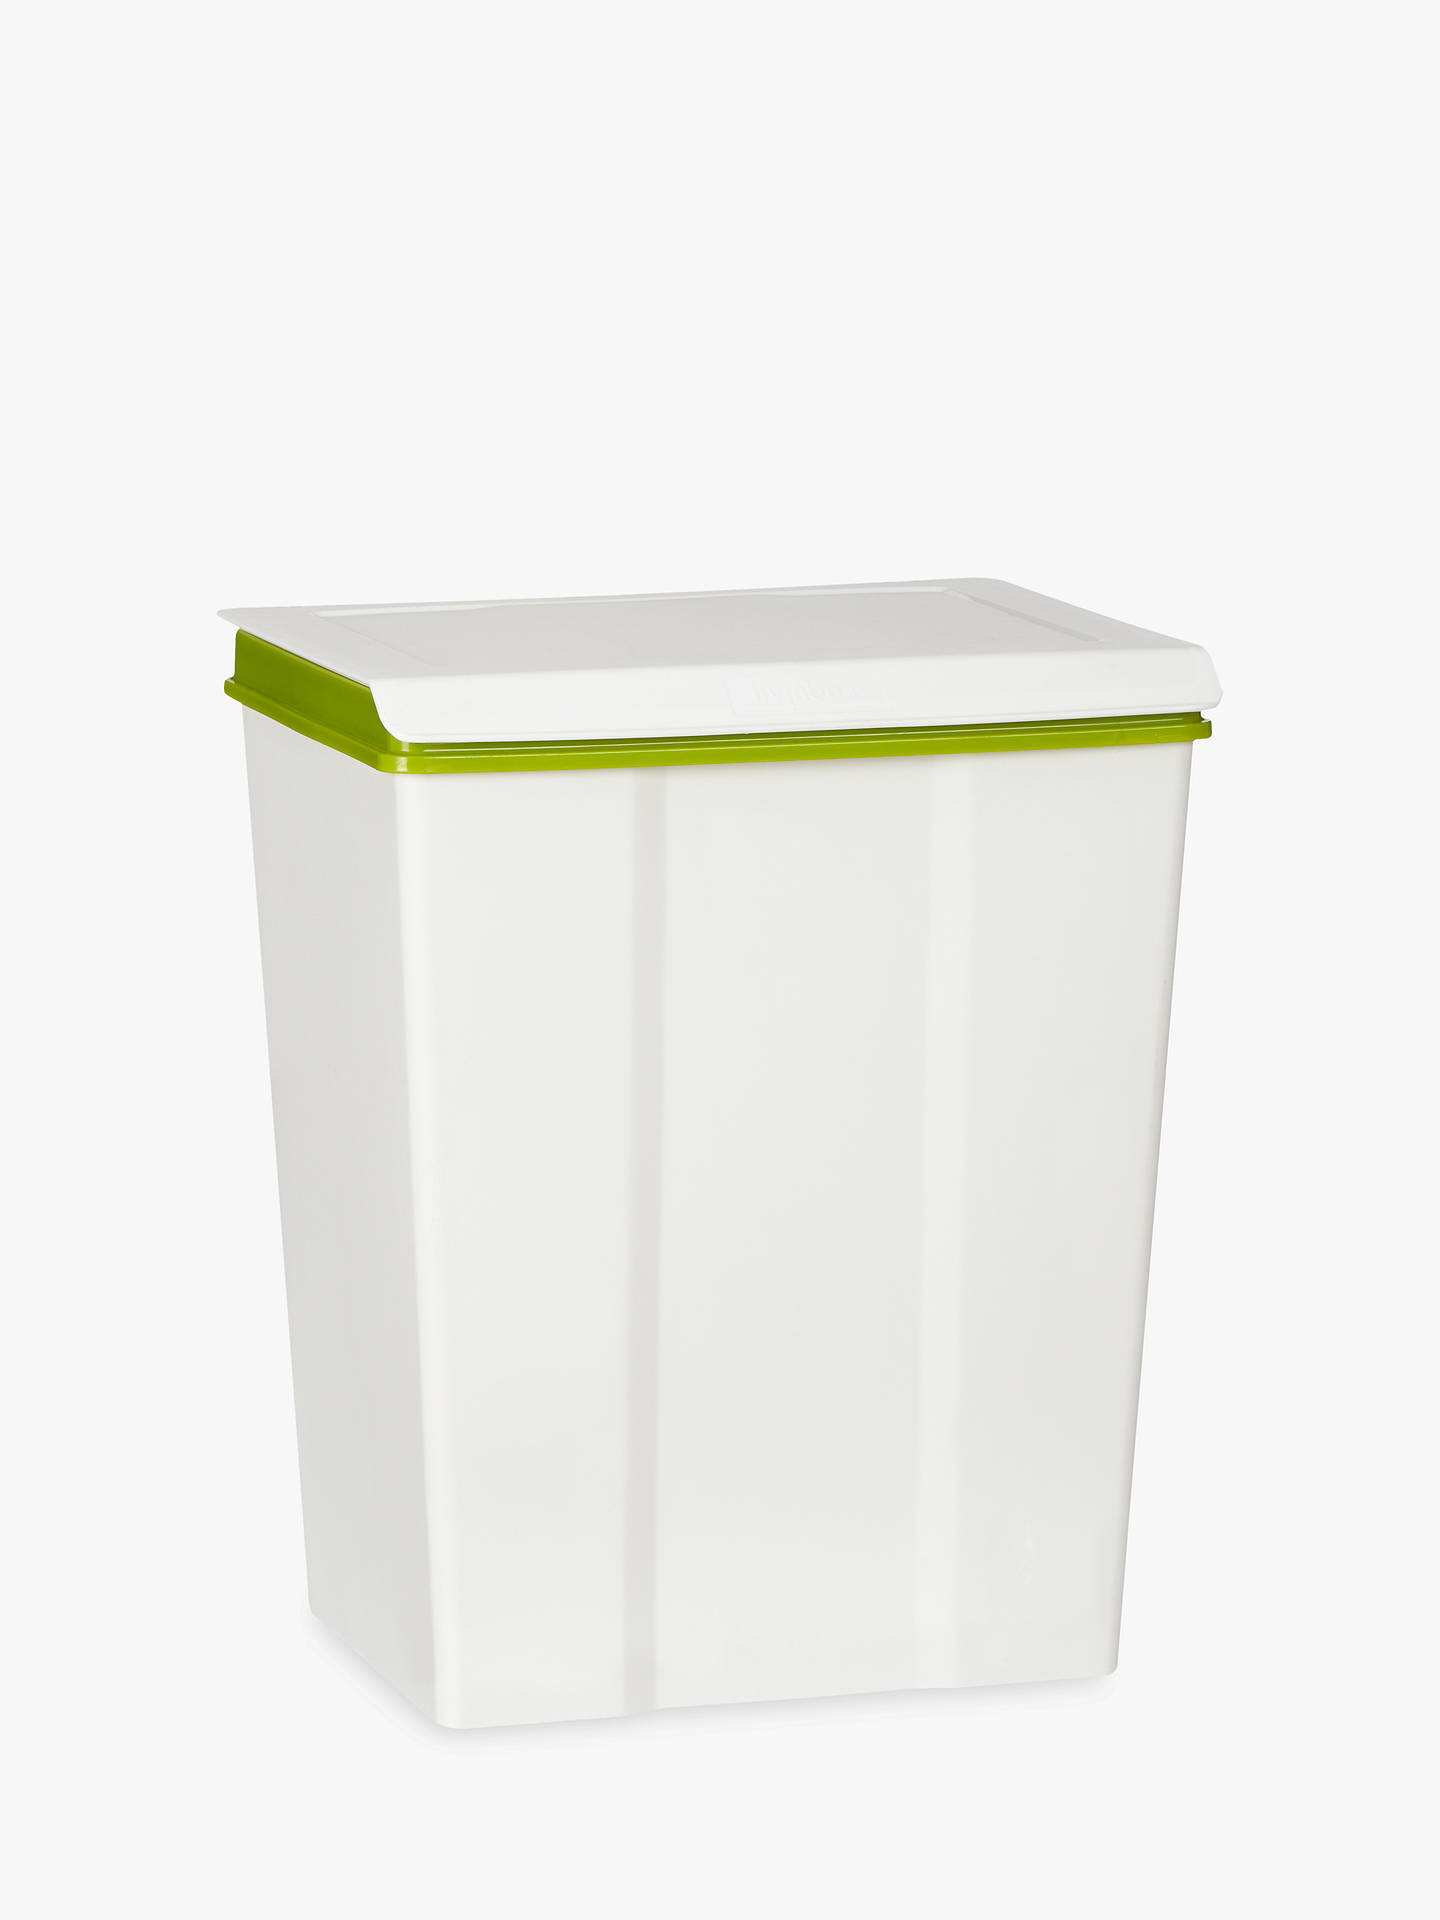 BuyJohn Lewis & Partners Medium Recycling Bin, White, 28L Online at johnlewis.com